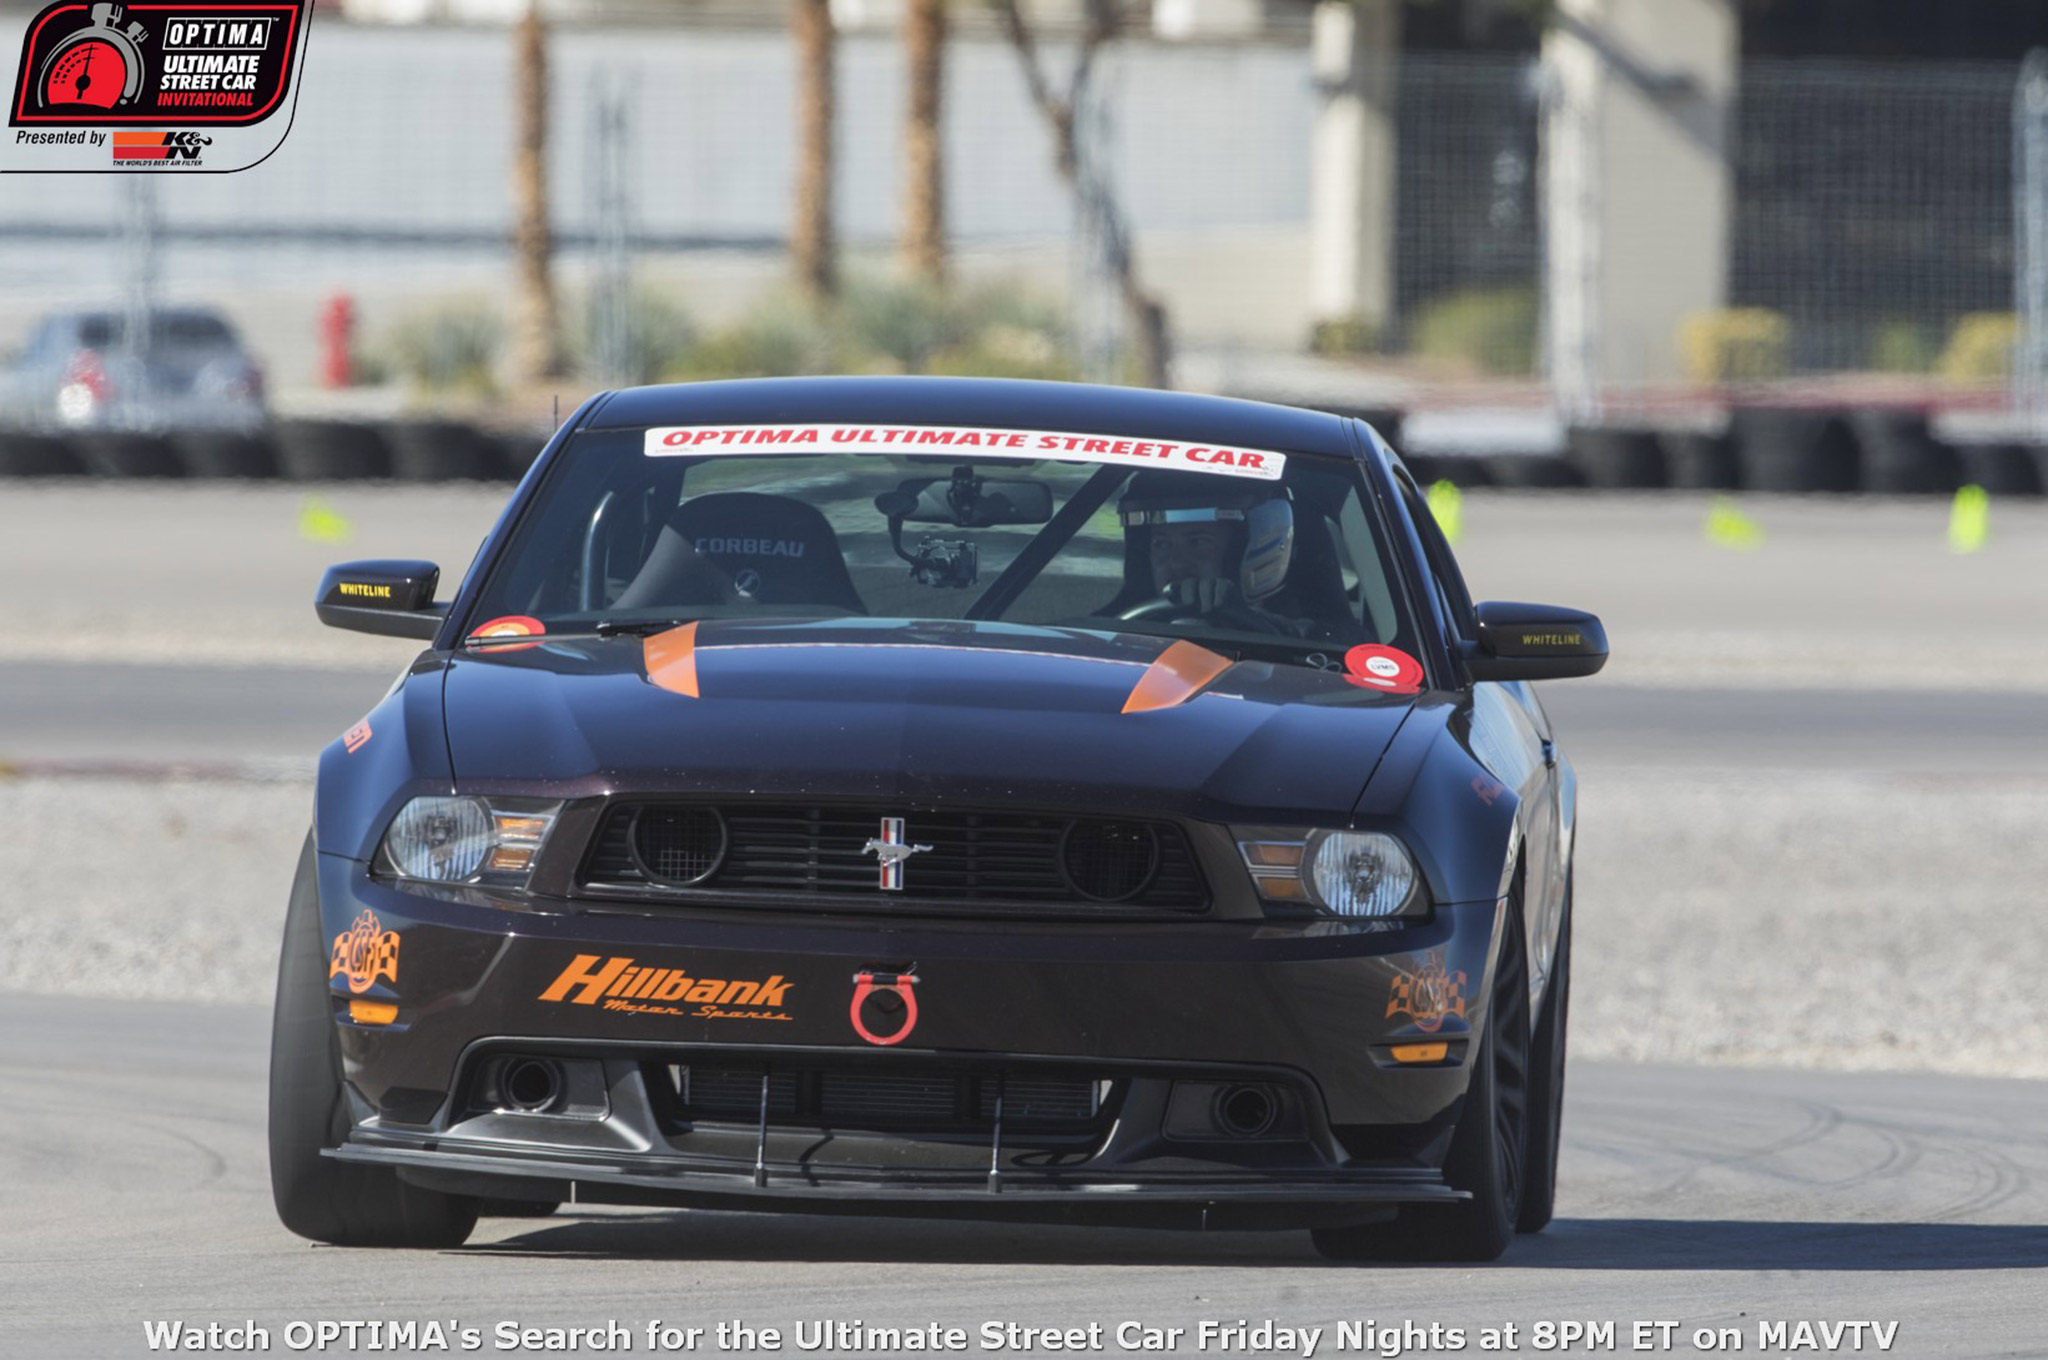 Andrew Nier's 2012 Mustang ran in three qualifying events in 2015 and received the coveted K&N Filters Spirit of the Event invitation to the OUSCI at the final qualifier at Auto Club Speedway.